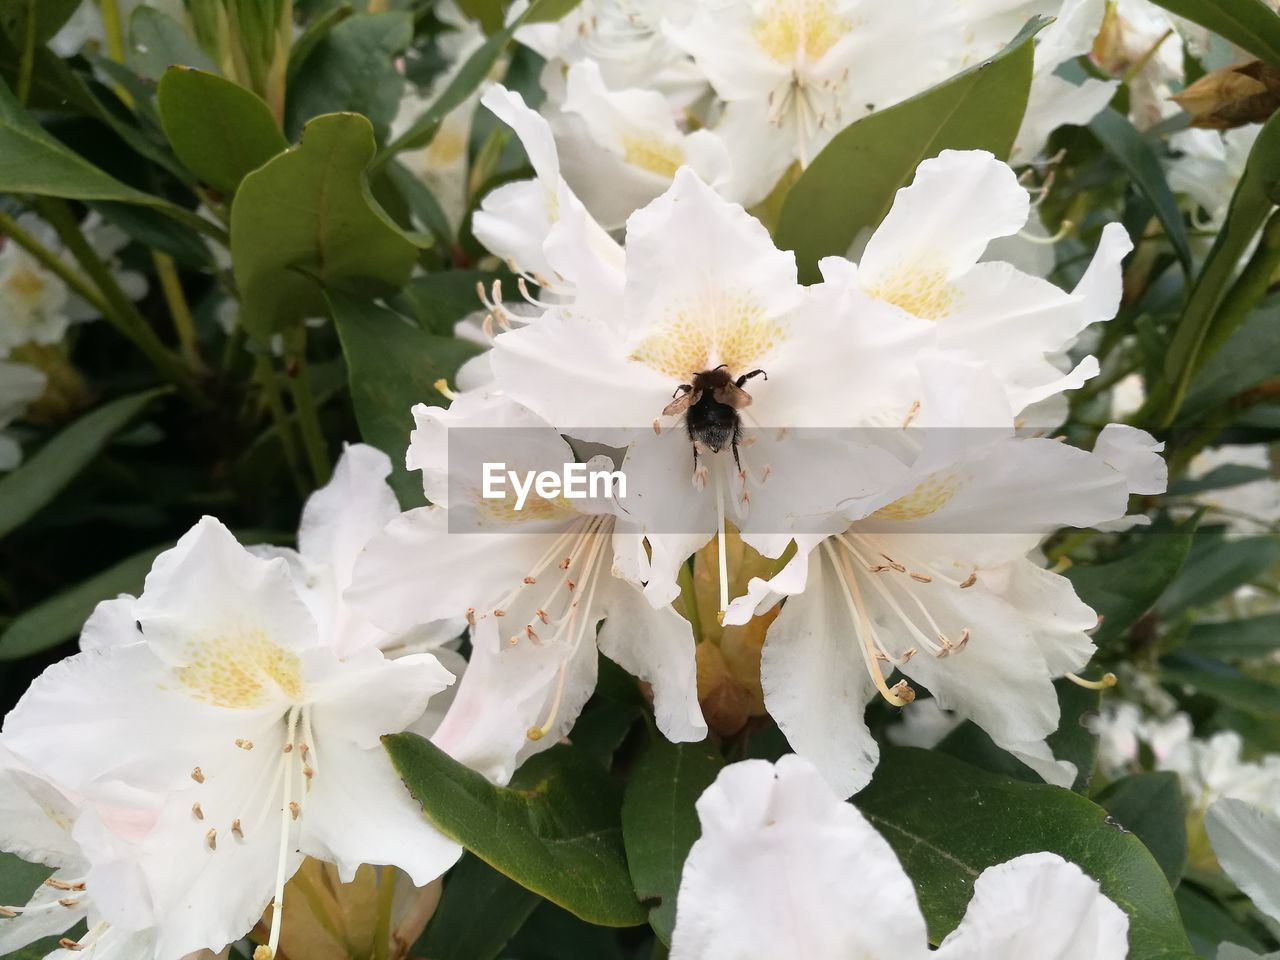 flower, white color, petal, fragility, one animal, freshness, beauty in nature, nature, insect, animal themes, flower head, growth, no people, pollen, animals in the wild, plant, day, leaf, close-up, blooming, bee, outdoors, pollination